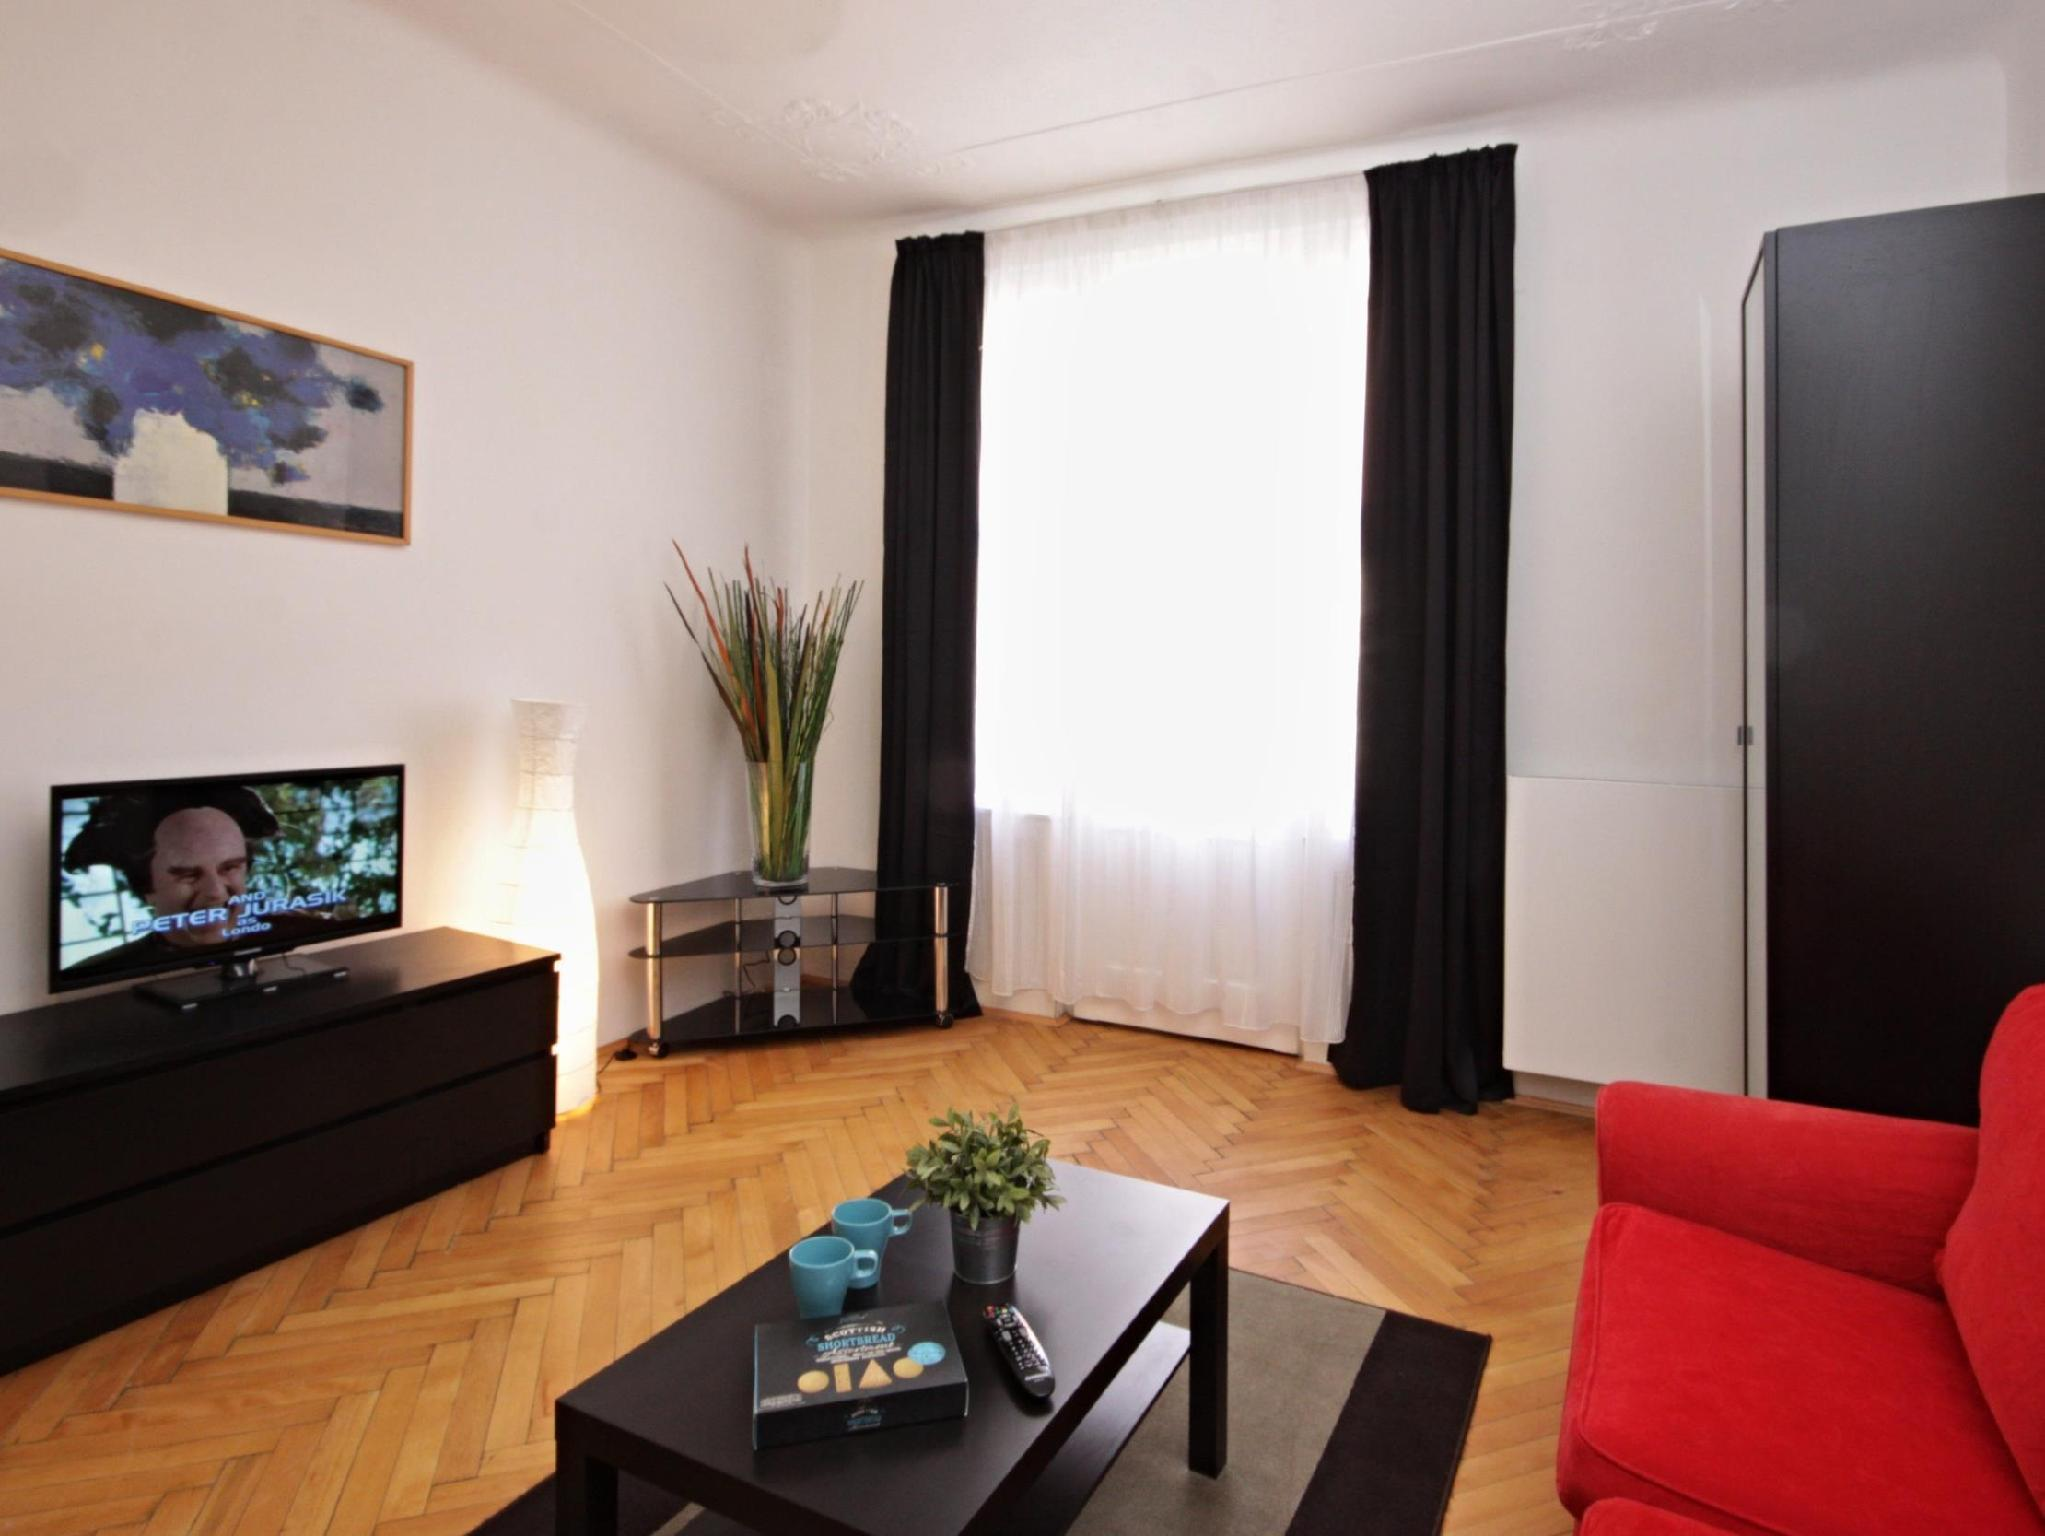 Apartament d'Una Habitació (One Bedroom Apartment)